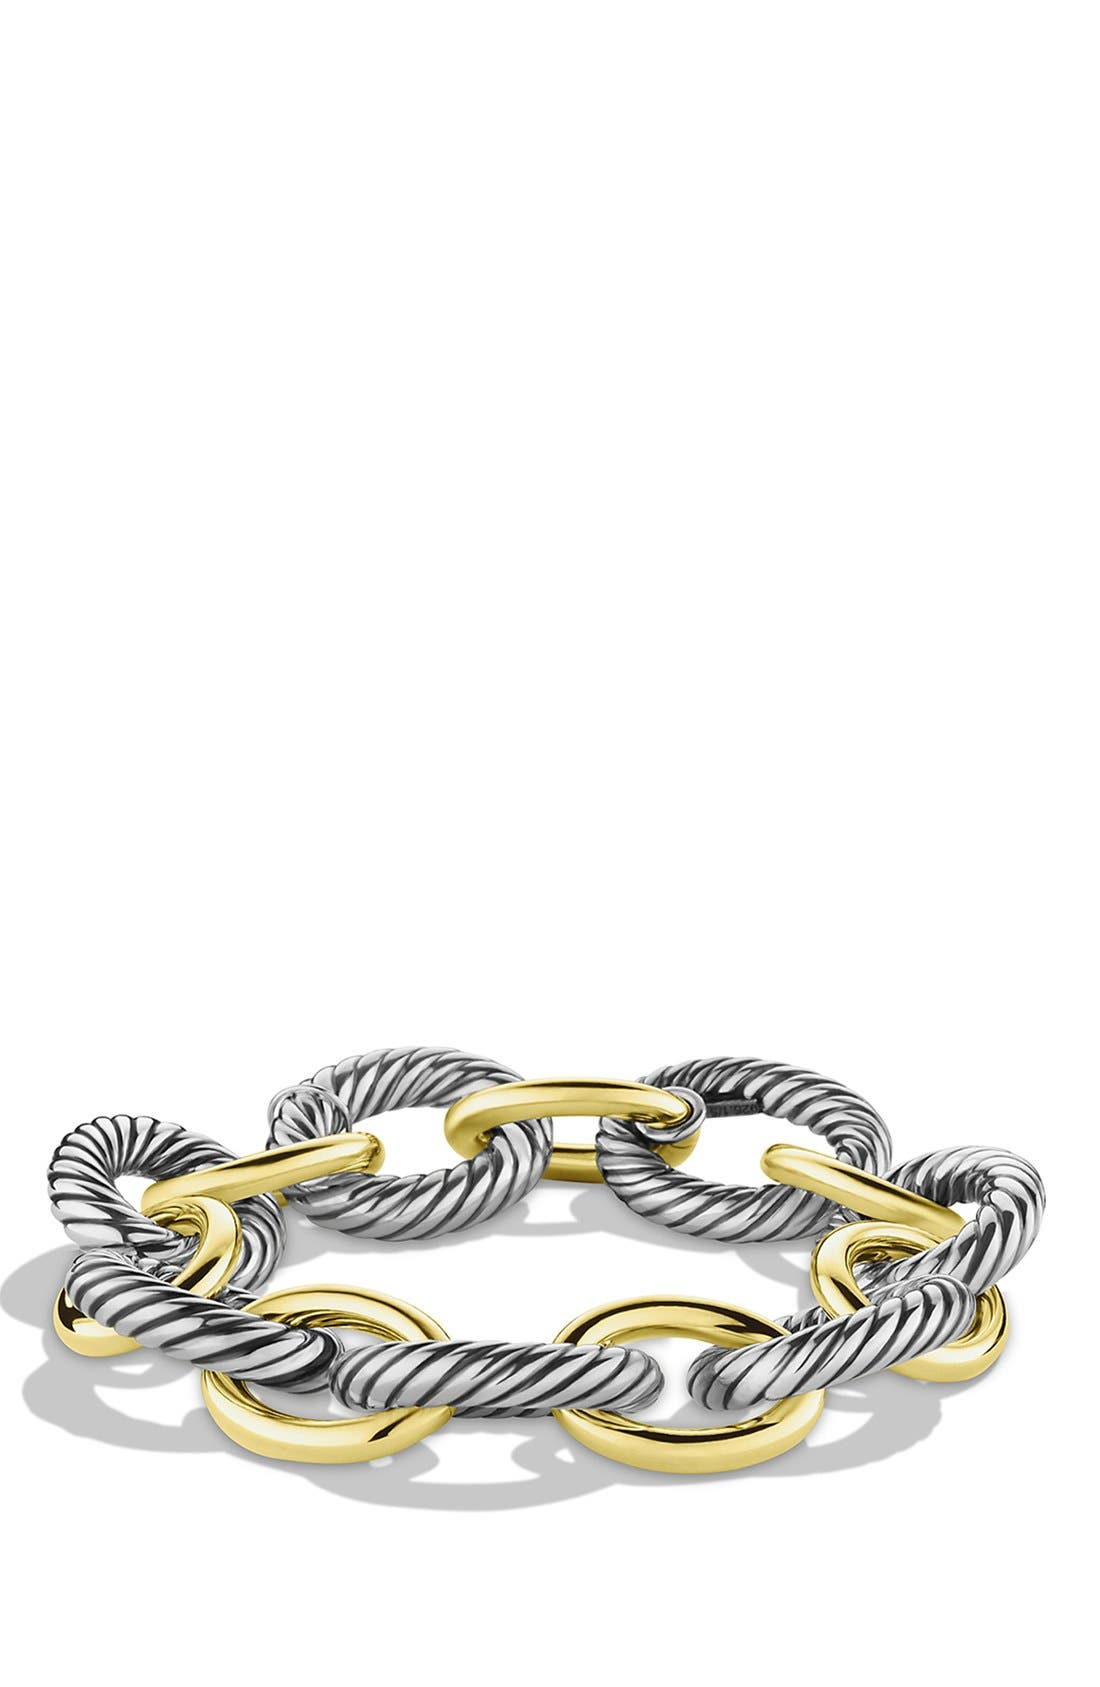 David Yurman 'Oval' Extra-Large Link Bracelet with Gold